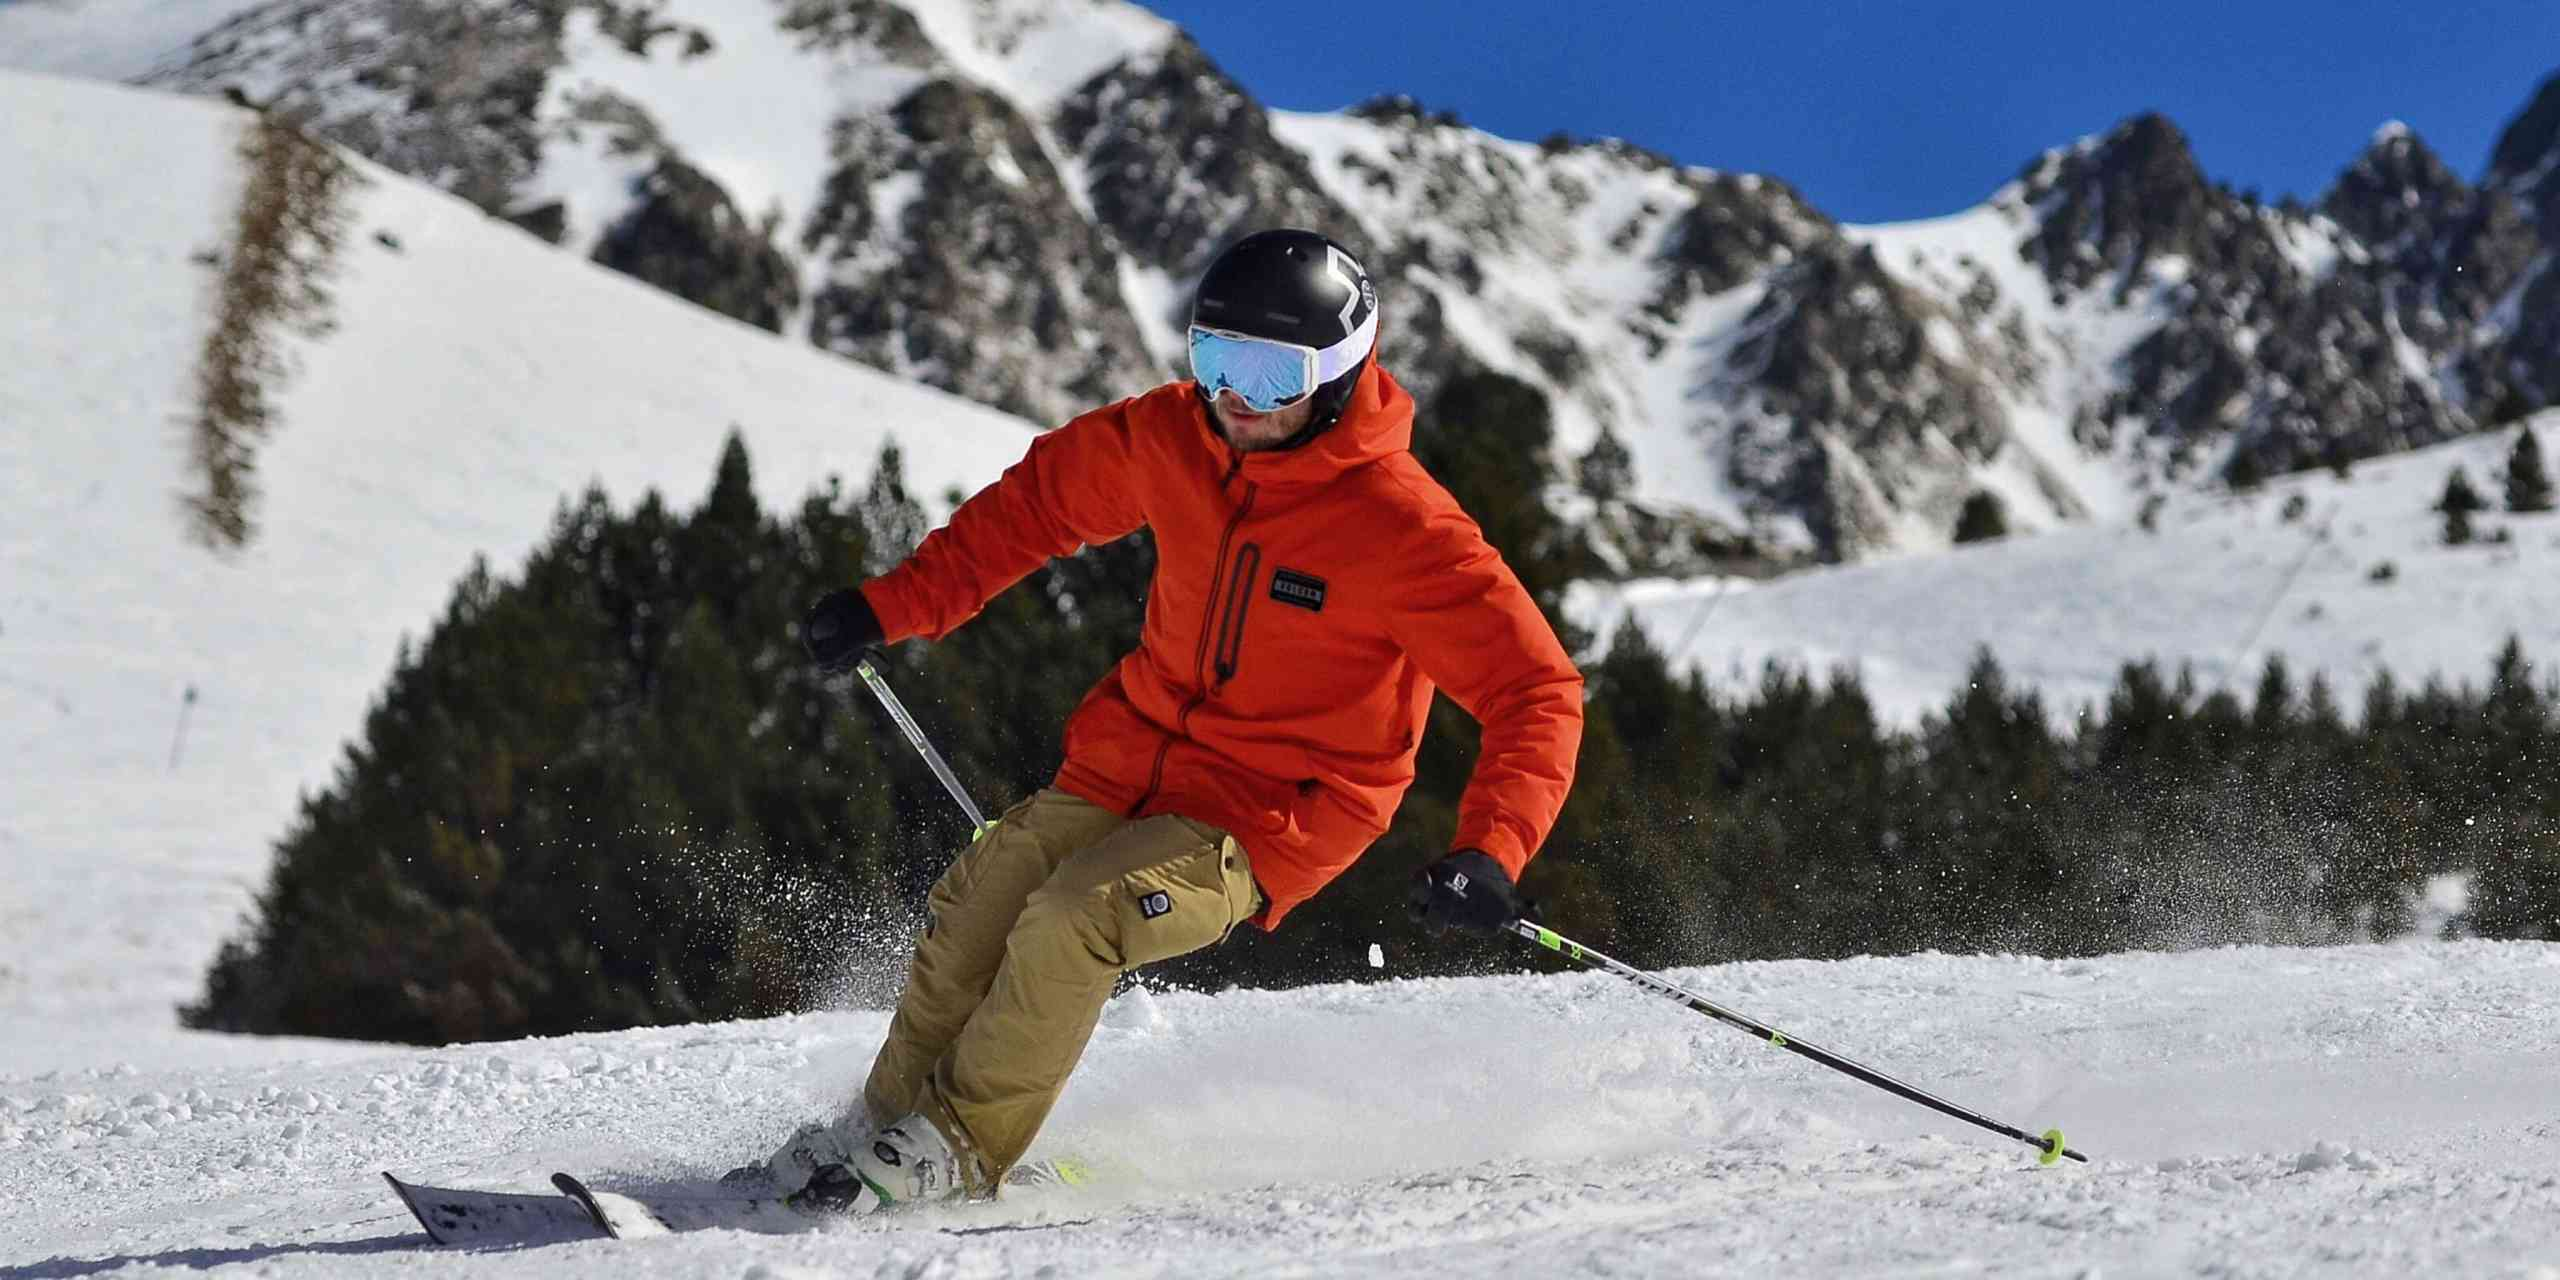 Top 9 Best Ski Jackets for Men 2020